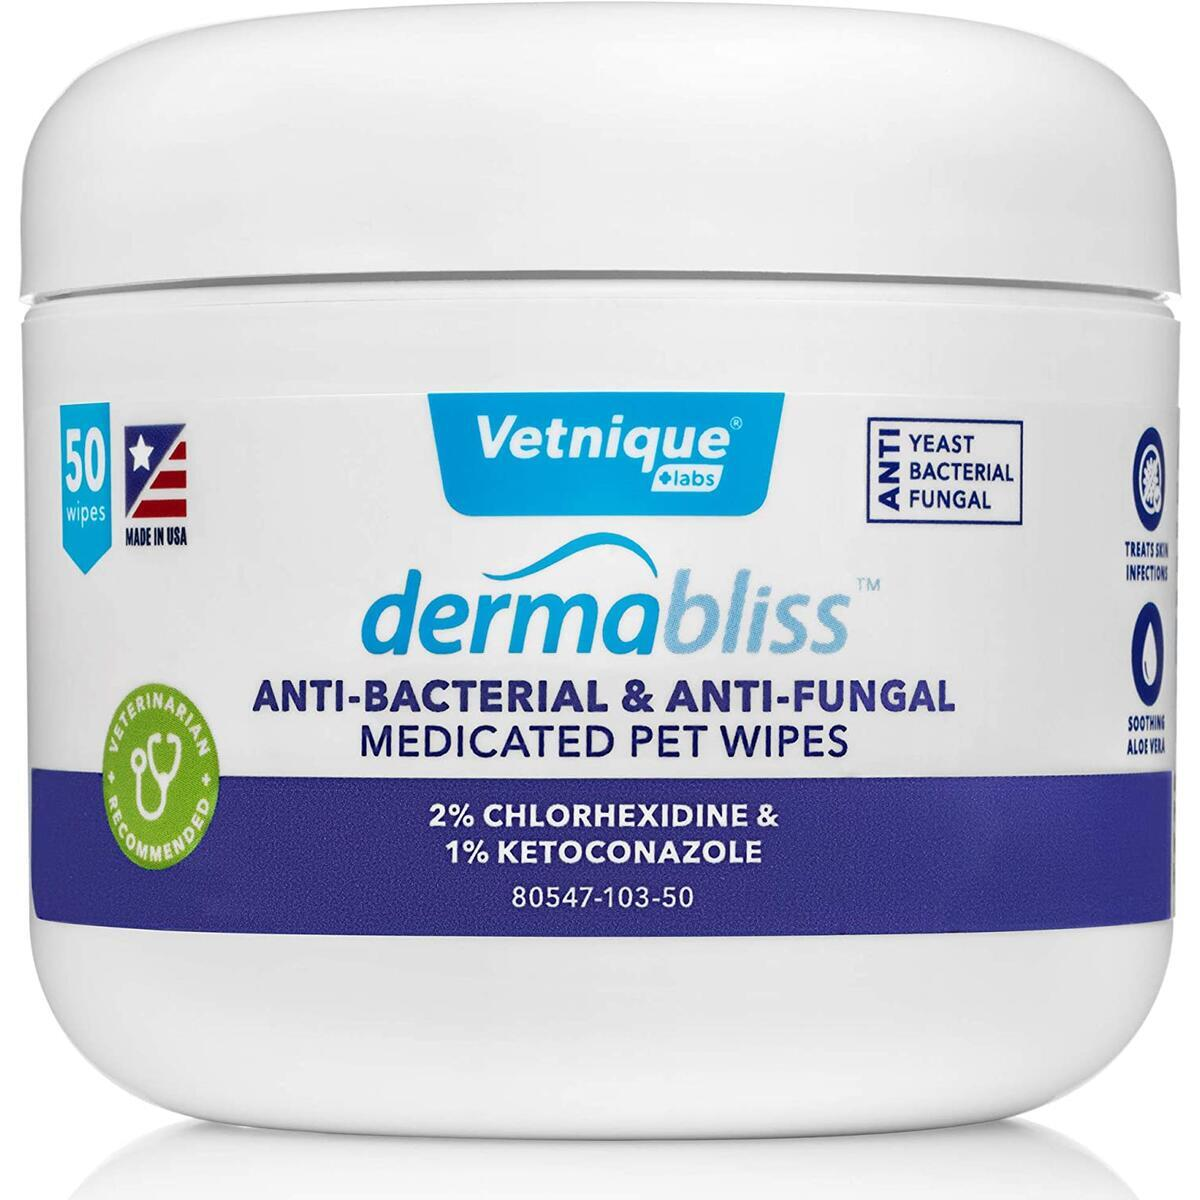 Dermabliss Anti-Bacterial & Anti-Fungal Medicated Wipes for Dogs and Cats with Chlorhexidine and Ketoconazole, Soothing Aloe for Skin Infection and Allergy Relief, 50ct Pet Wipes…